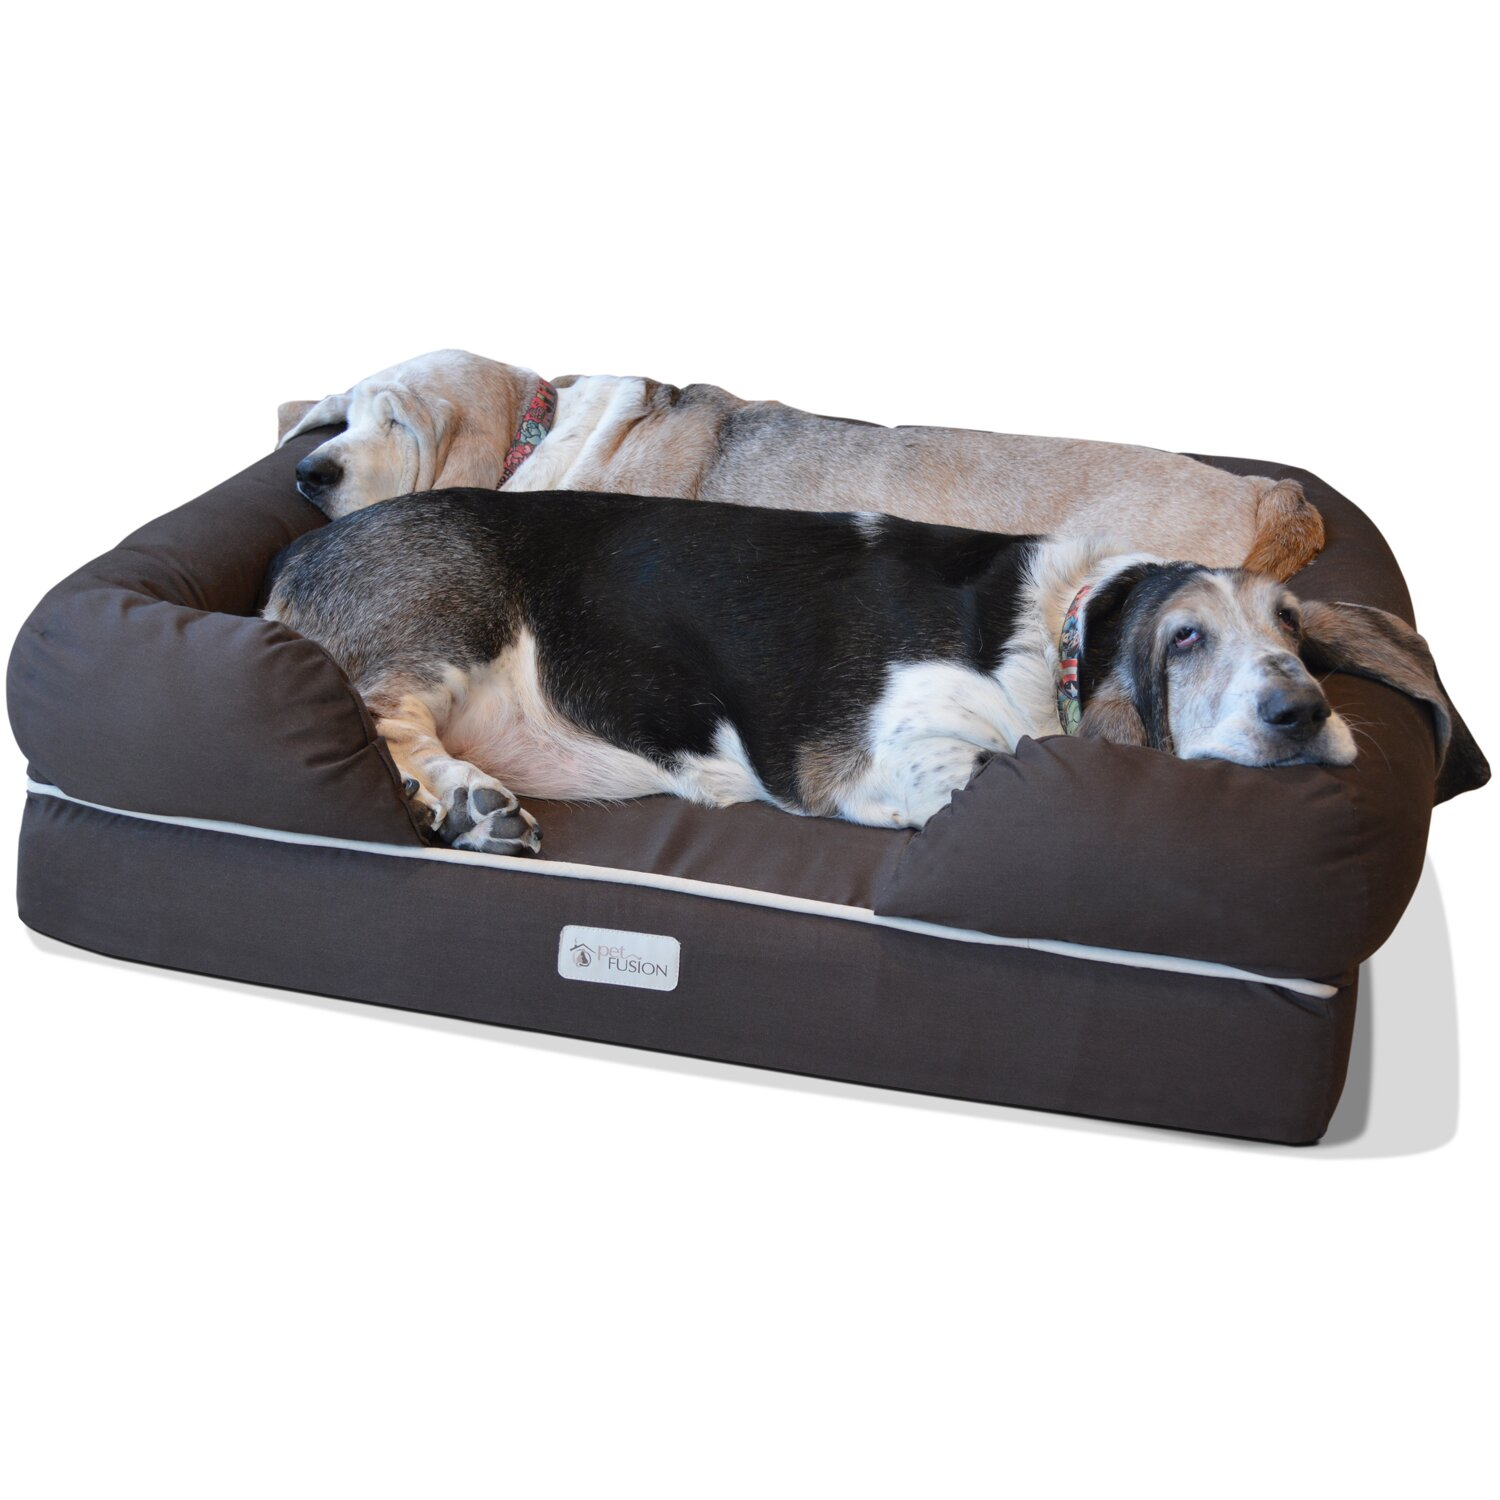 petfusion ultimate bolster dog bed and lounge with solid memory foam reviews wayfair. Black Bedroom Furniture Sets. Home Design Ideas